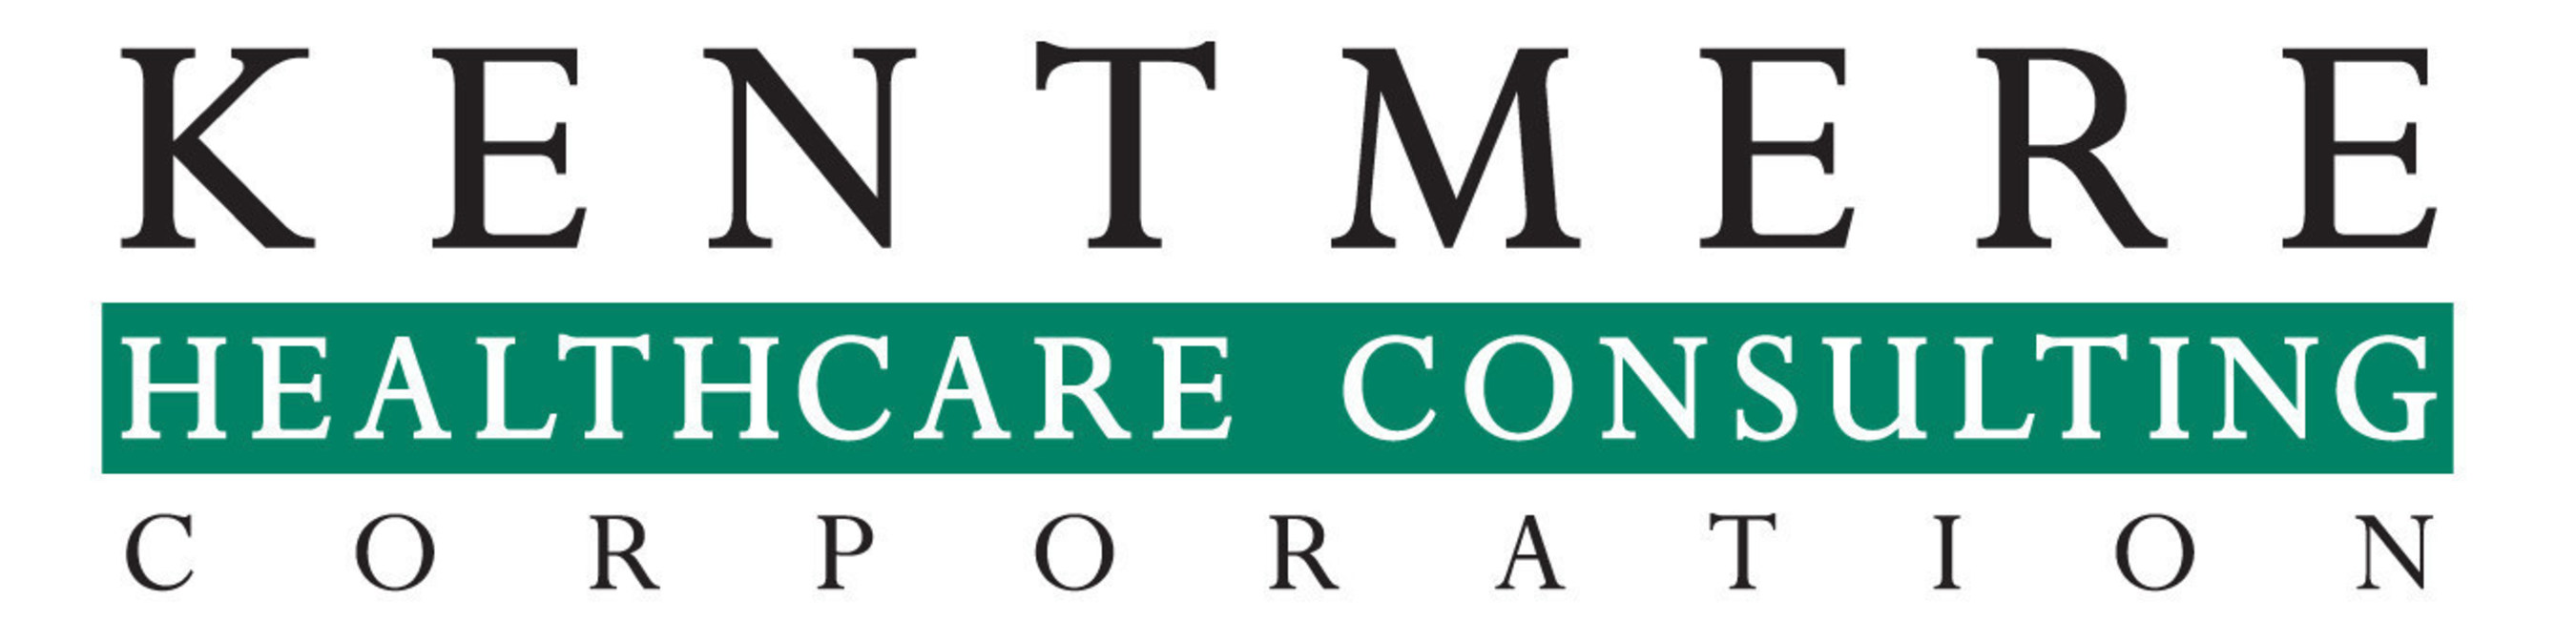 Kentmere Healthcare Consulting Corporation